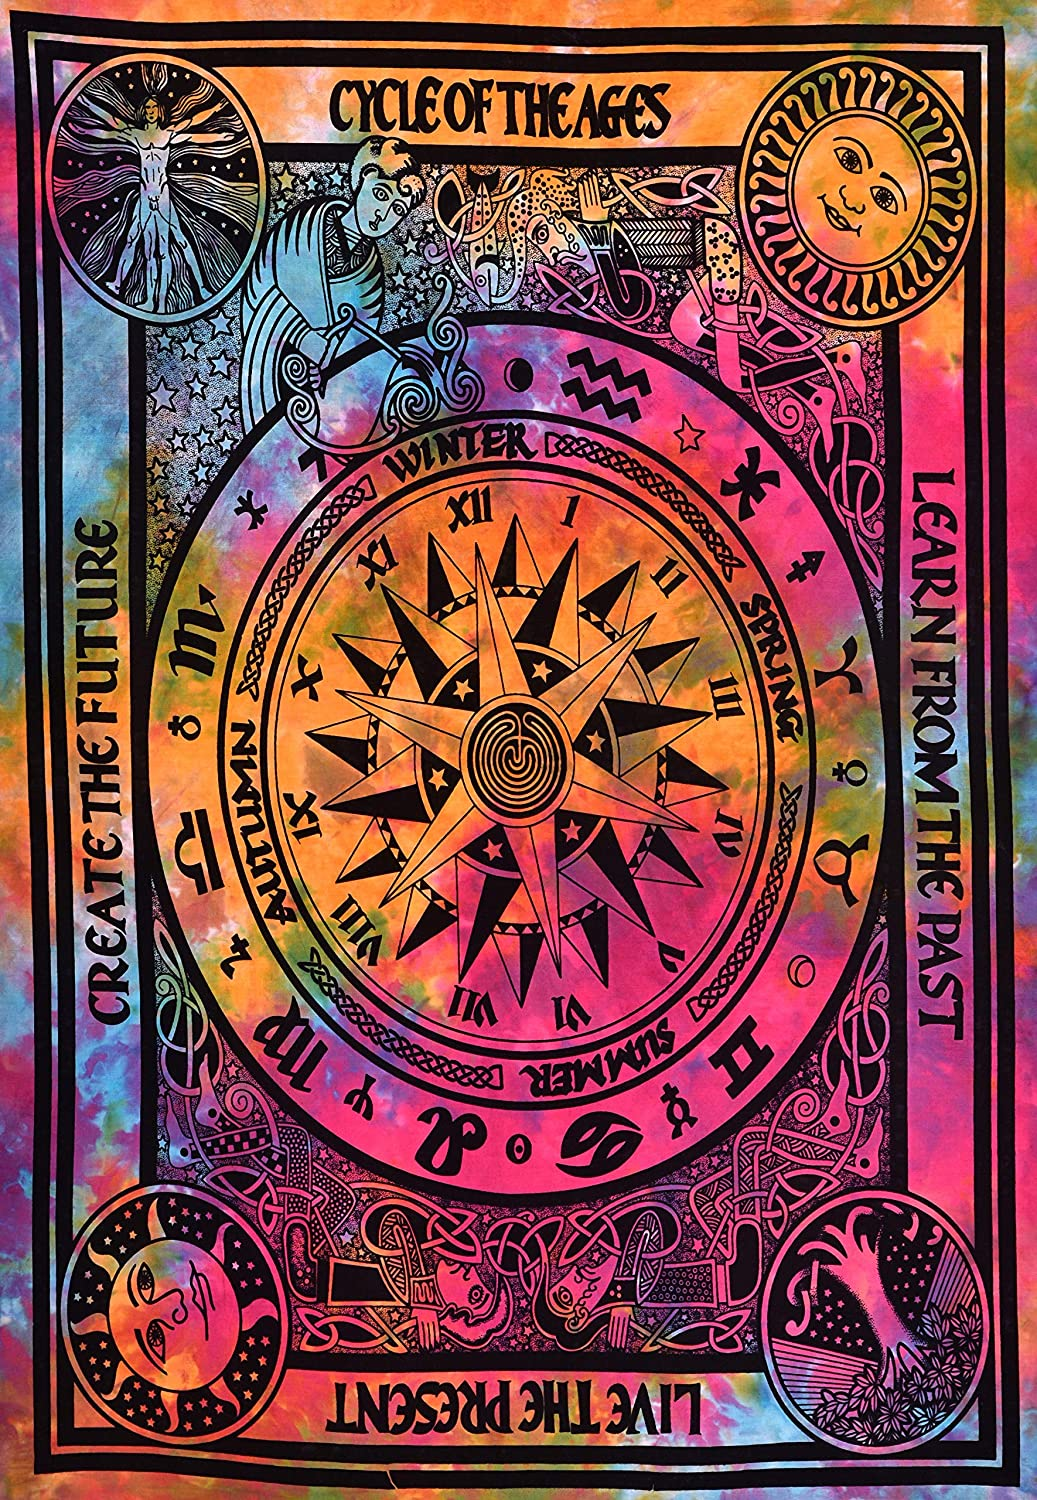 ANJANIYA Zodiac Goodluck Cycle of Ages Bohemian Room Dorm Decor Hippie Indian Tie Dye Small Boho Tapestry Psychedelic Poster Size 40